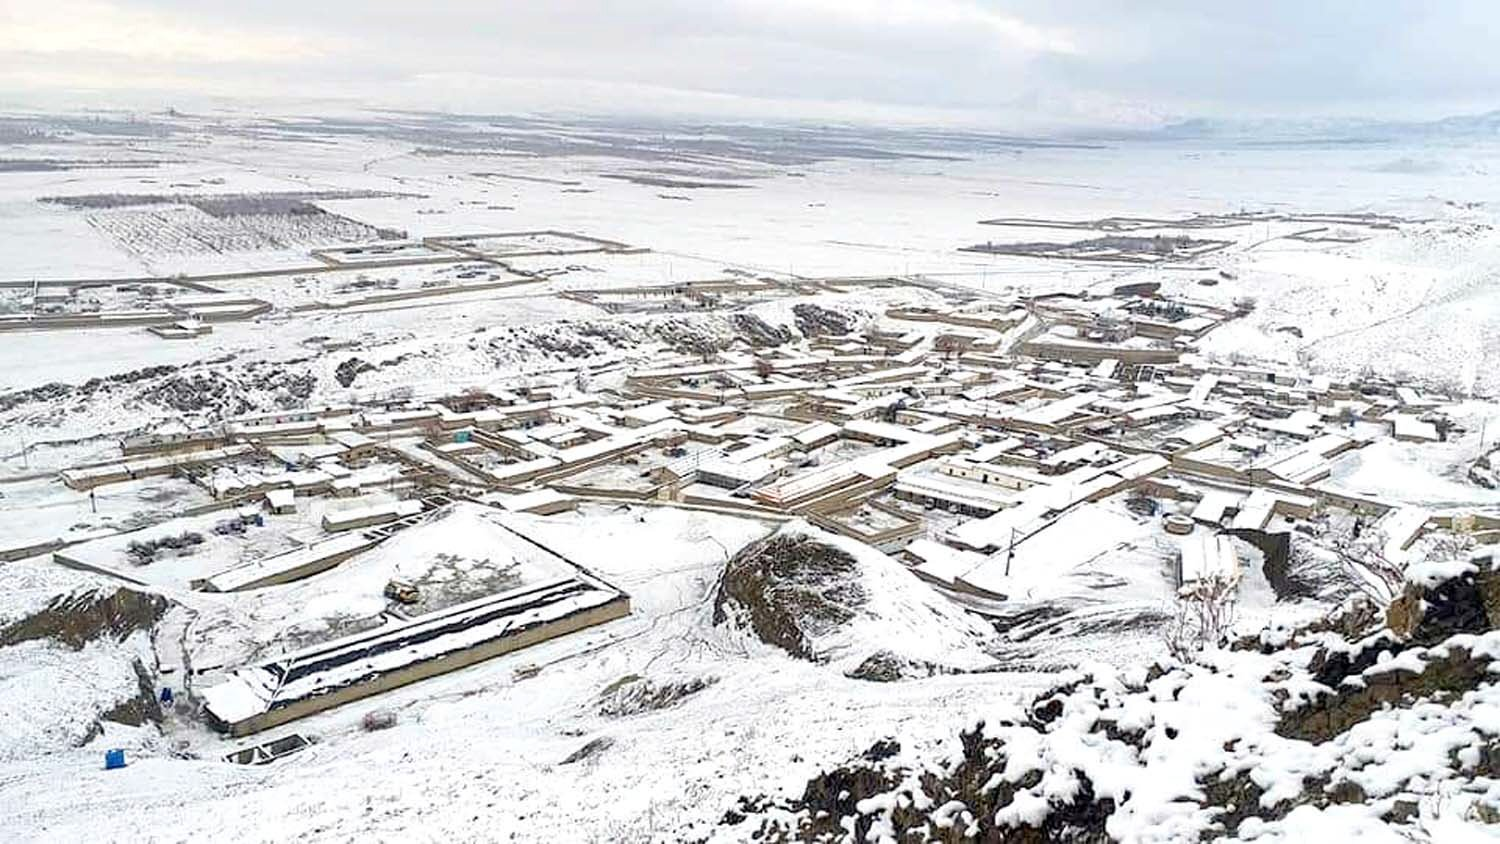 a beautiful snow covered view of khanozai in pishin district photo express